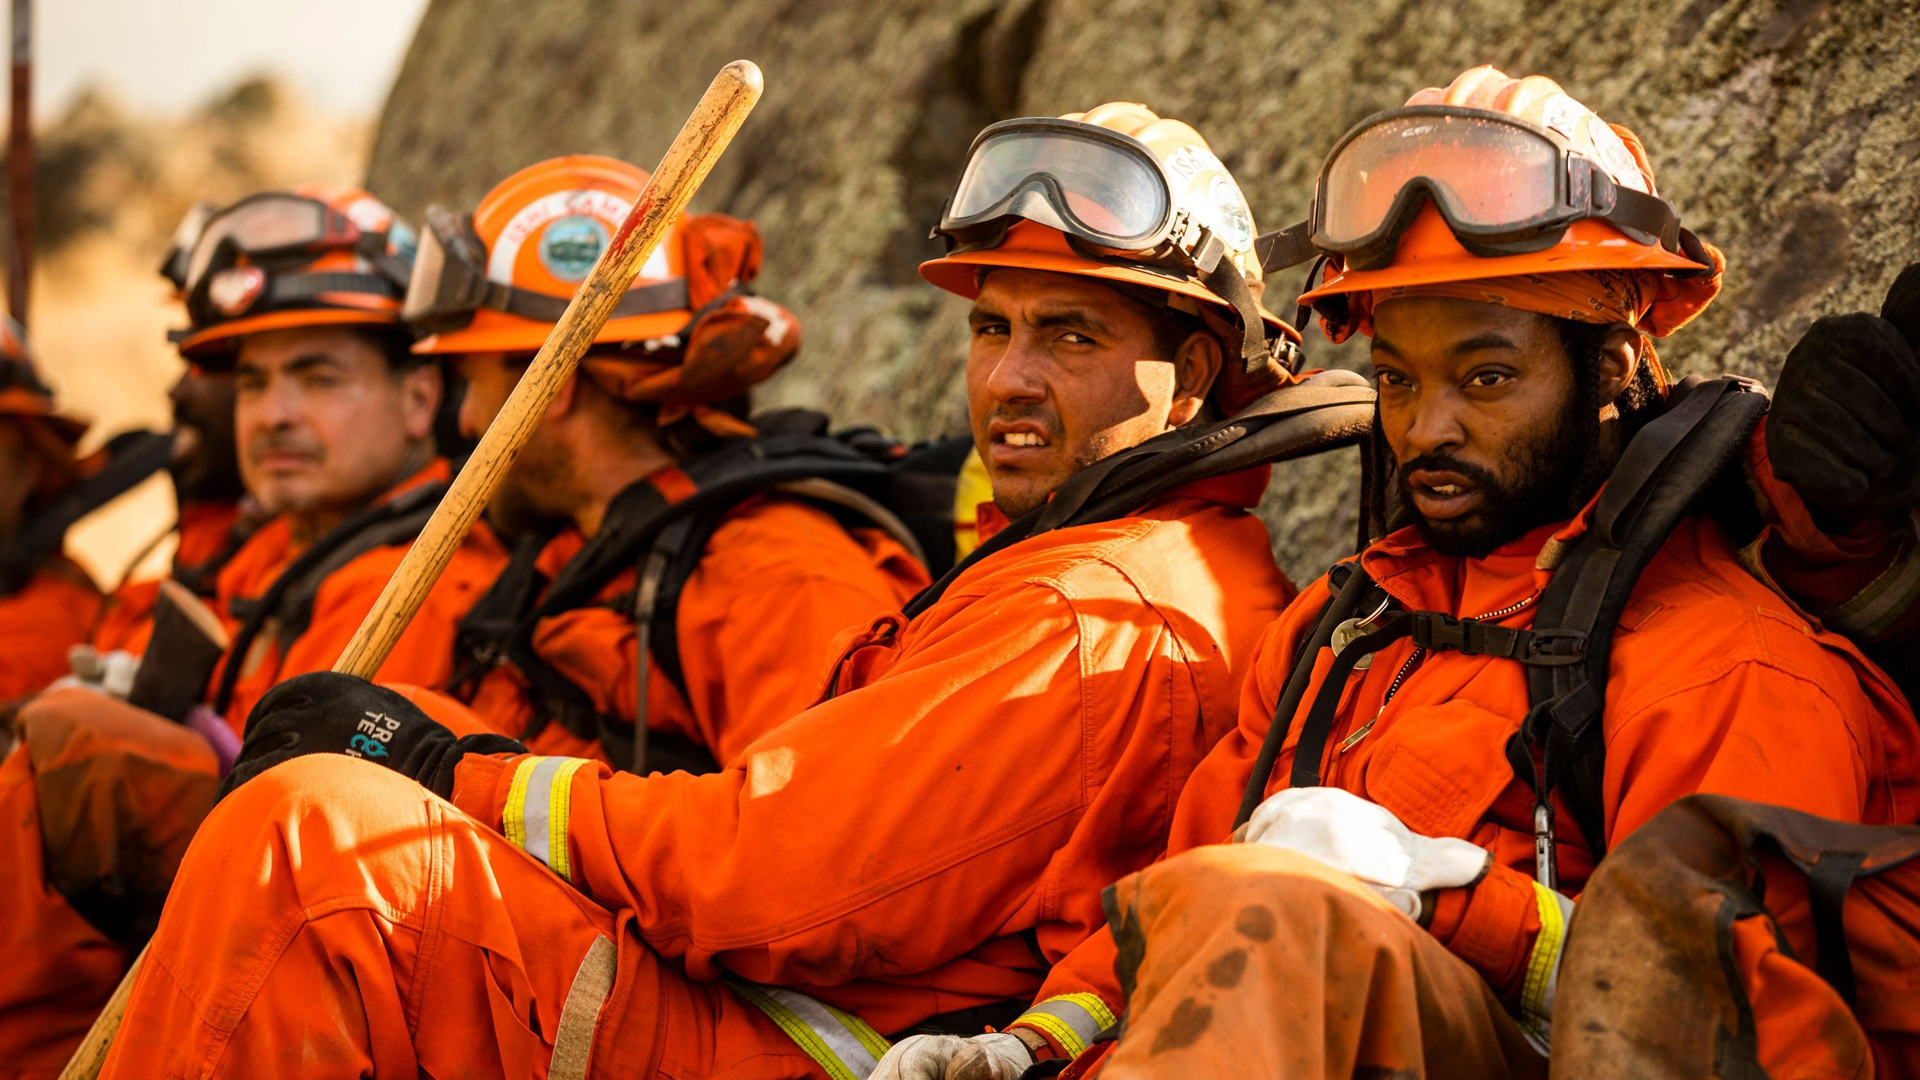 A crew of inmate firefighters takes a break from battling the Kincade Fire in Healdsburg. (Credit: Philip Pacheco/AFP/Getty Images)